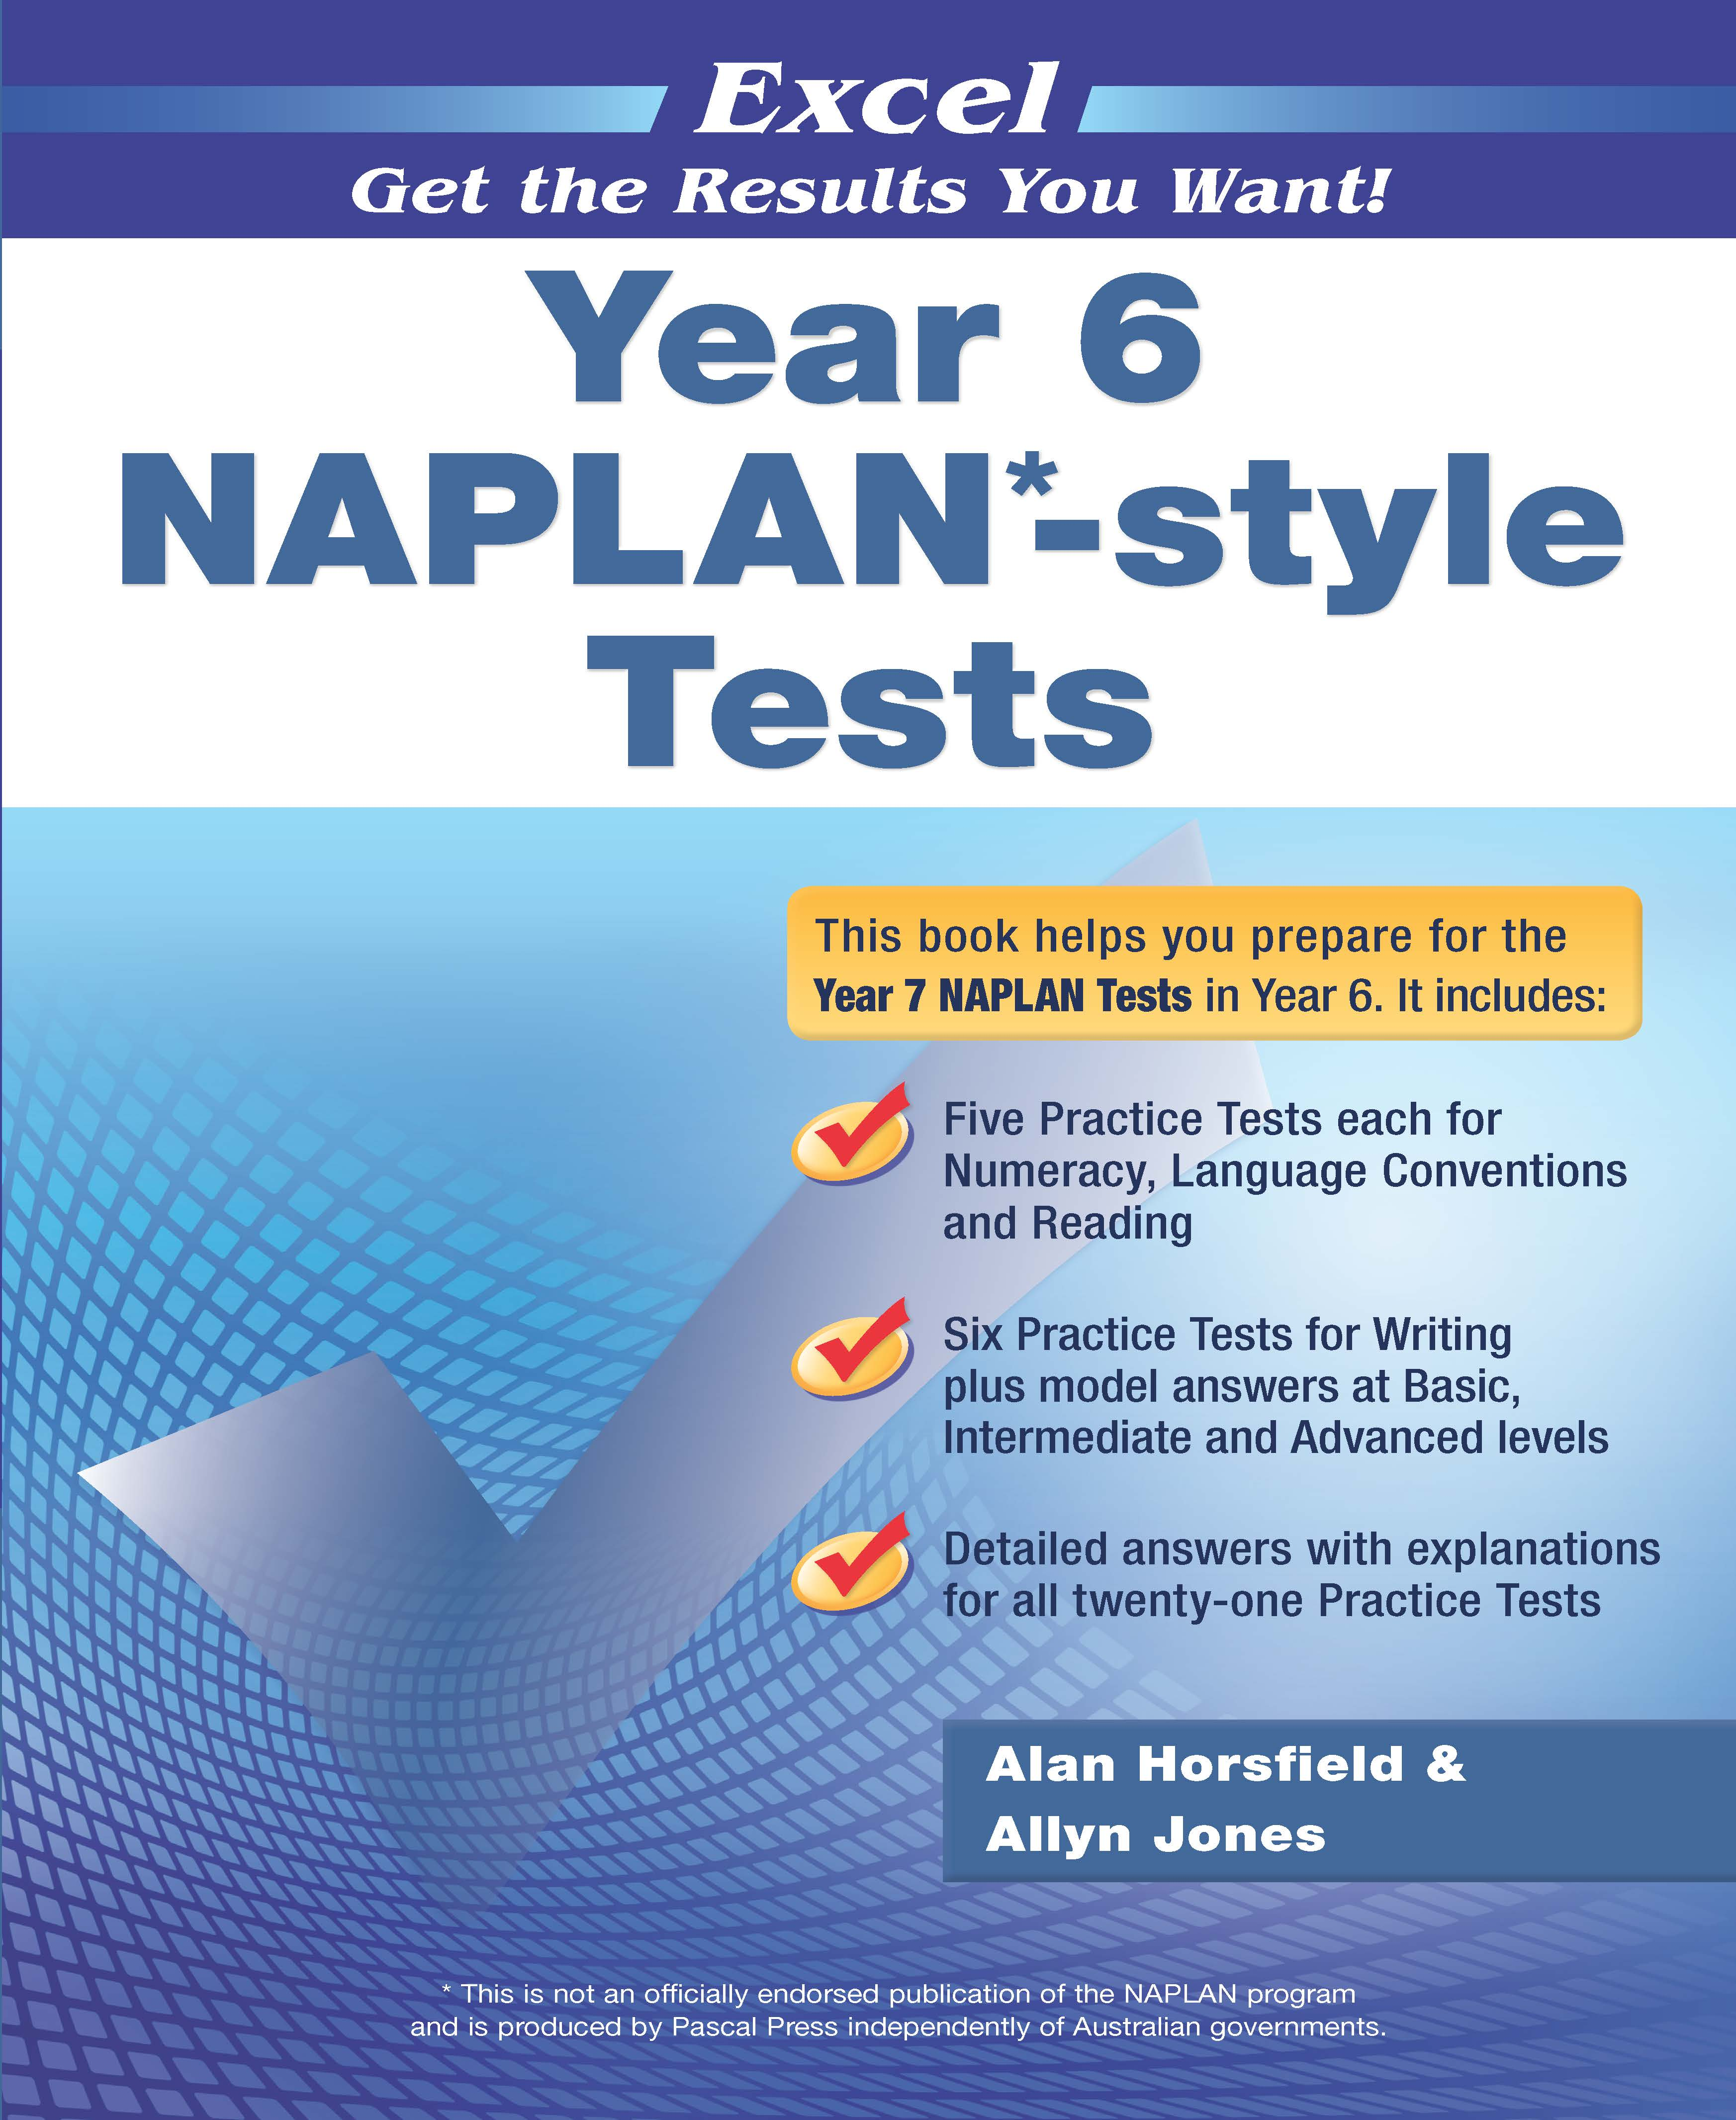 Excel NAPLAN*-style Tests Year 6